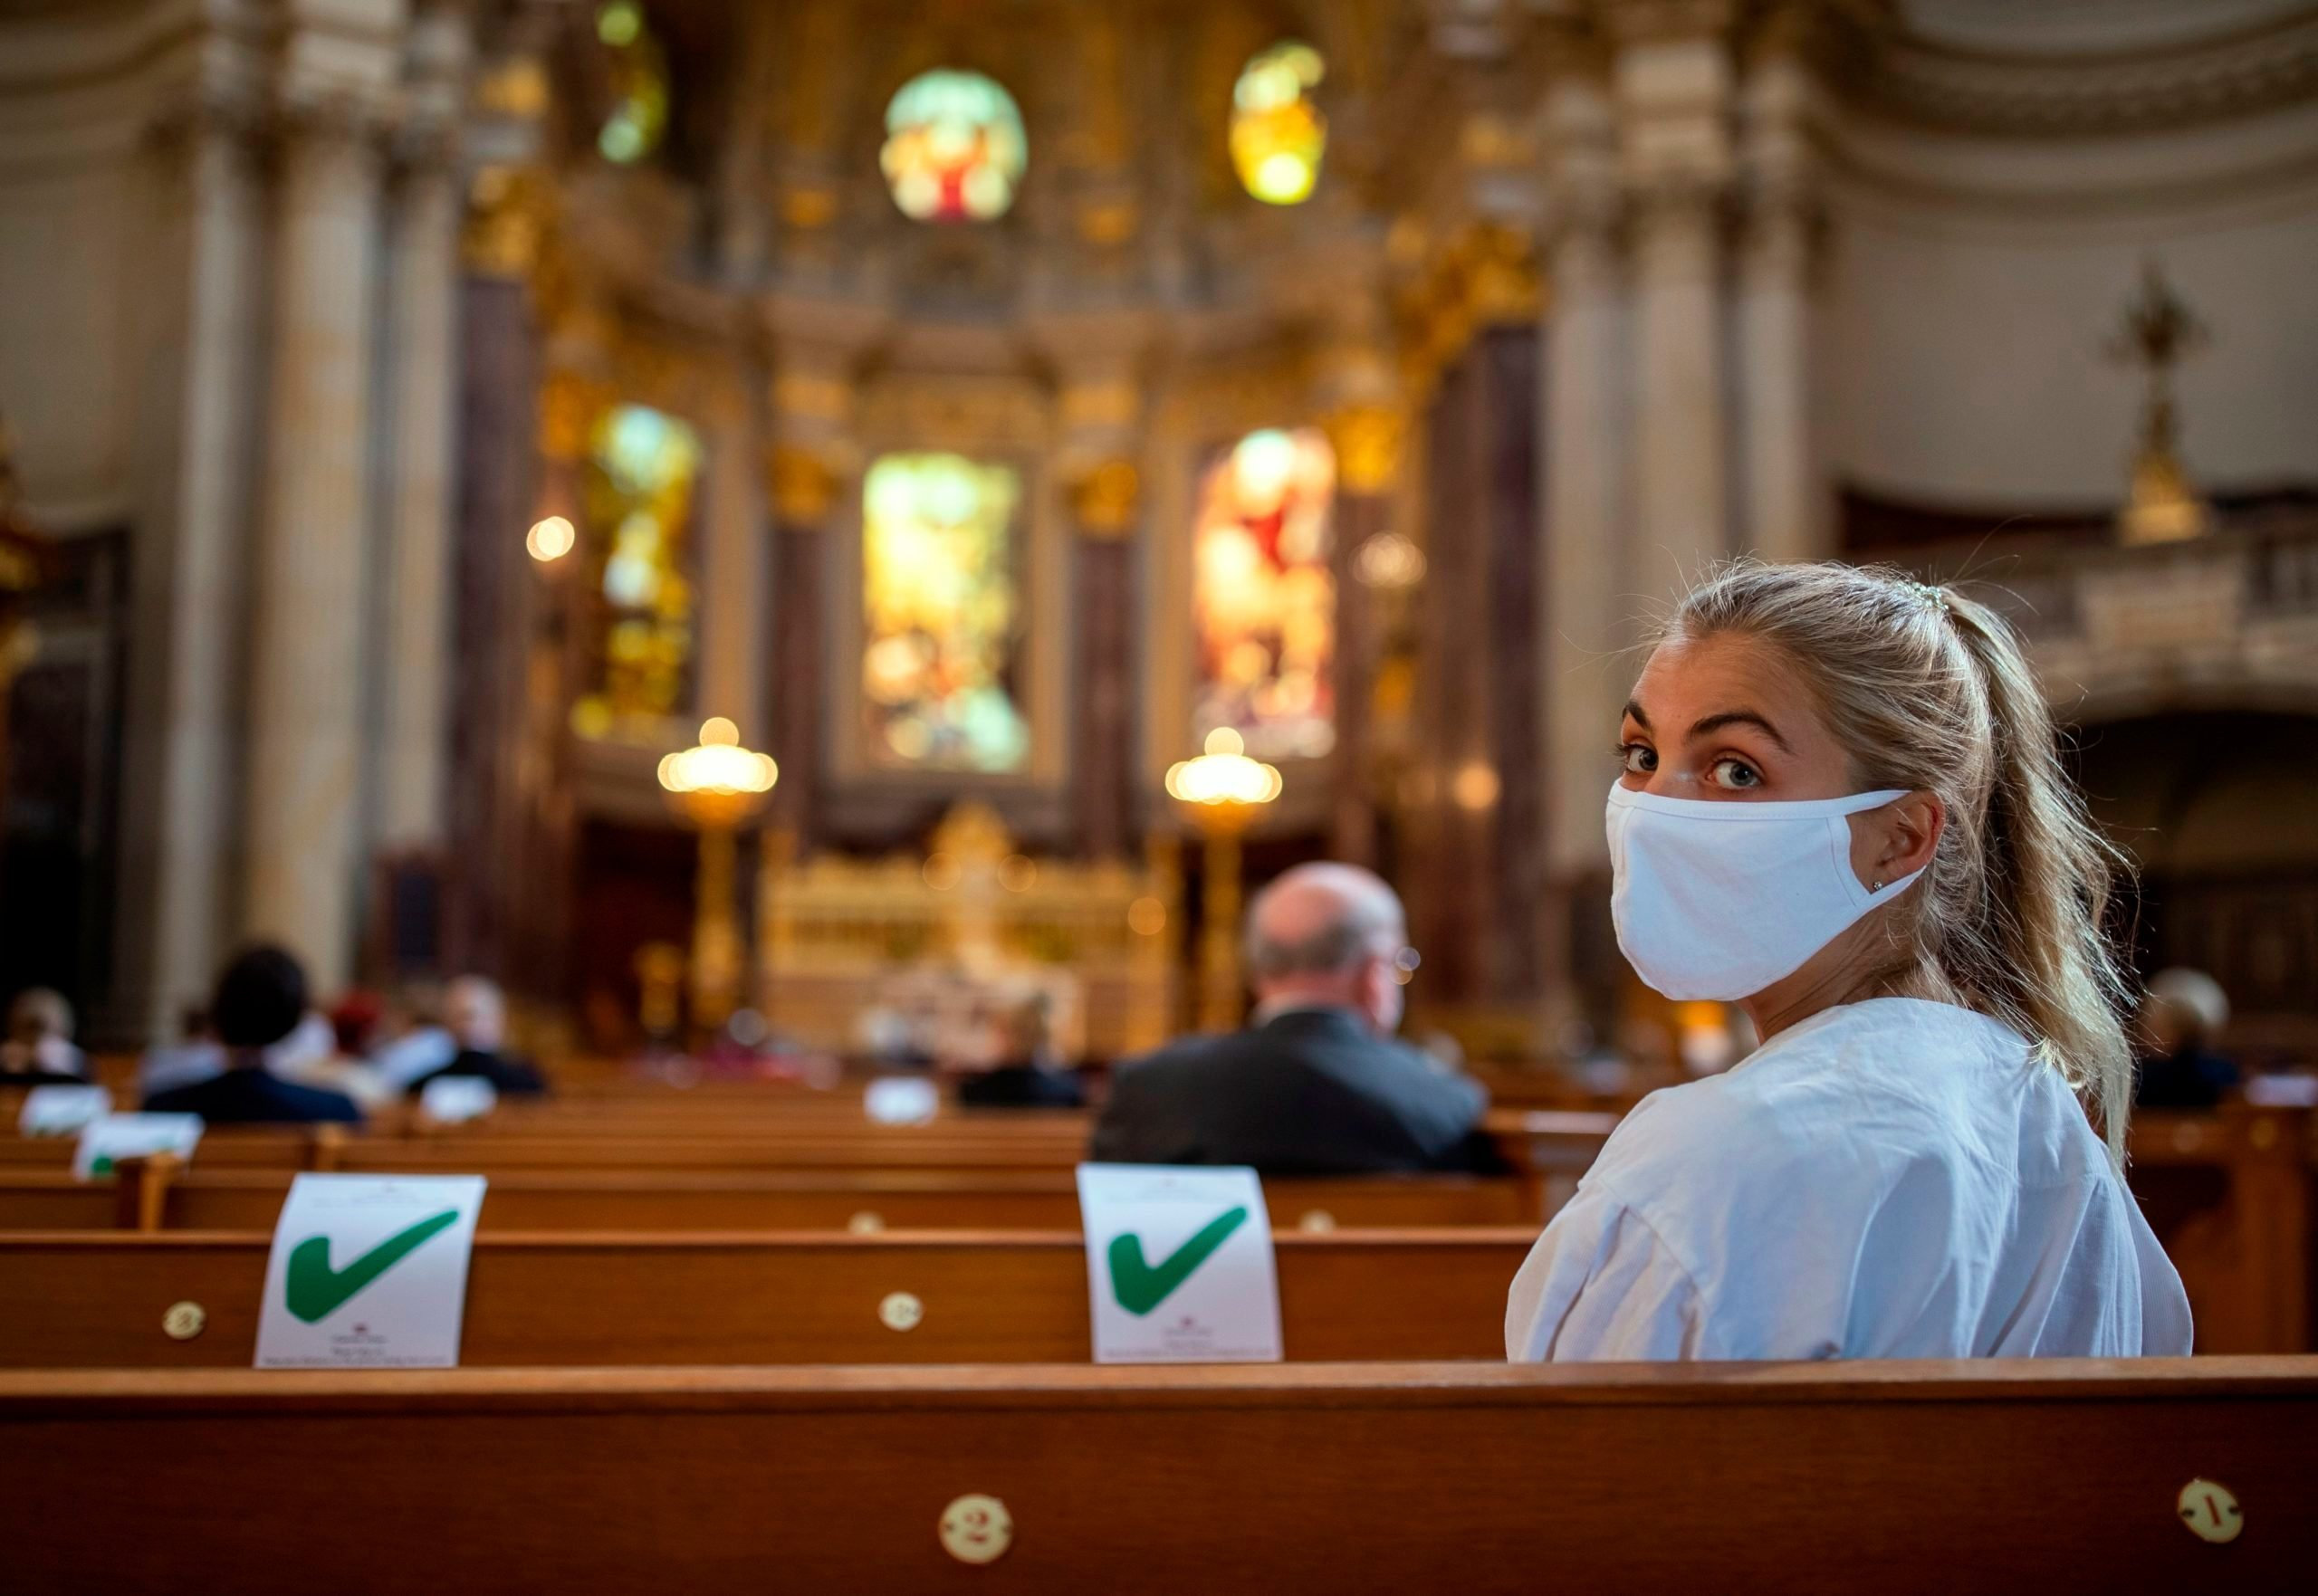 A woman wearing a protective face mask attends a Sunday service at the Berliner Dom cathedral in Berlin on May 10, 2020, amid the Covid-19 coronavirus pandemic. - The German capital's Protestant Cathedral reopened for worshippers on Sunday after being online only for two months, due to restrictions and social distancing rules implemented to limit the spread of the virus.